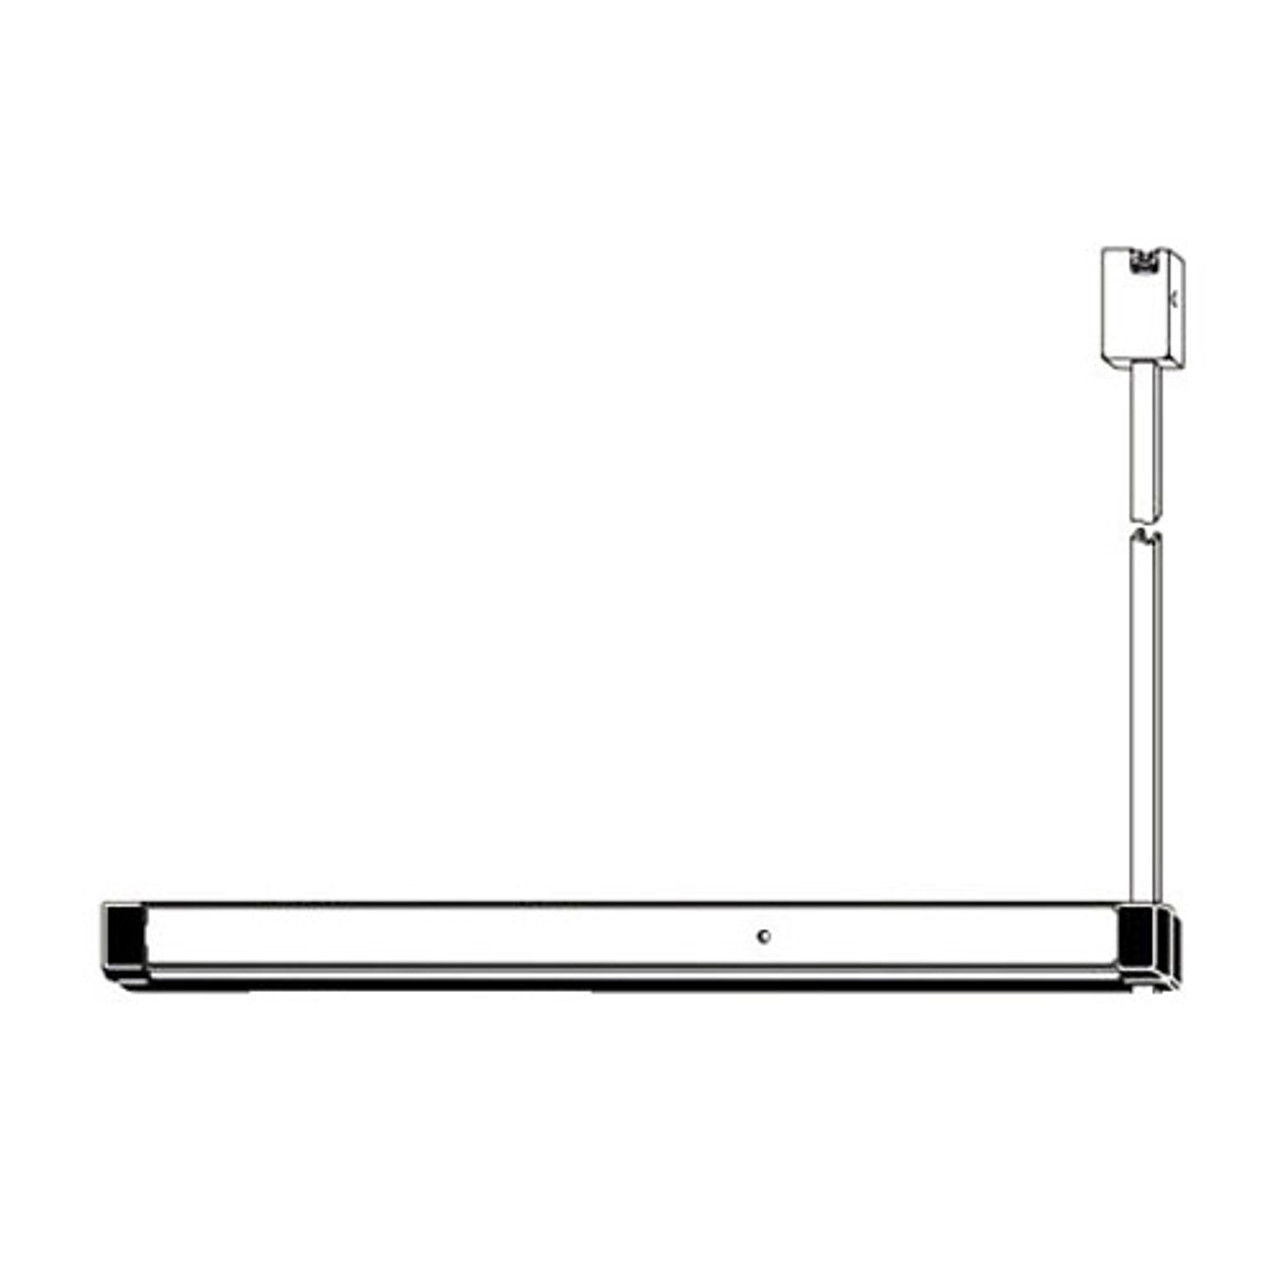 8200T-LRM-36-US3 Adams Rite Narrow Stile Surface Vertical Rod Exit Device in Bright Brass